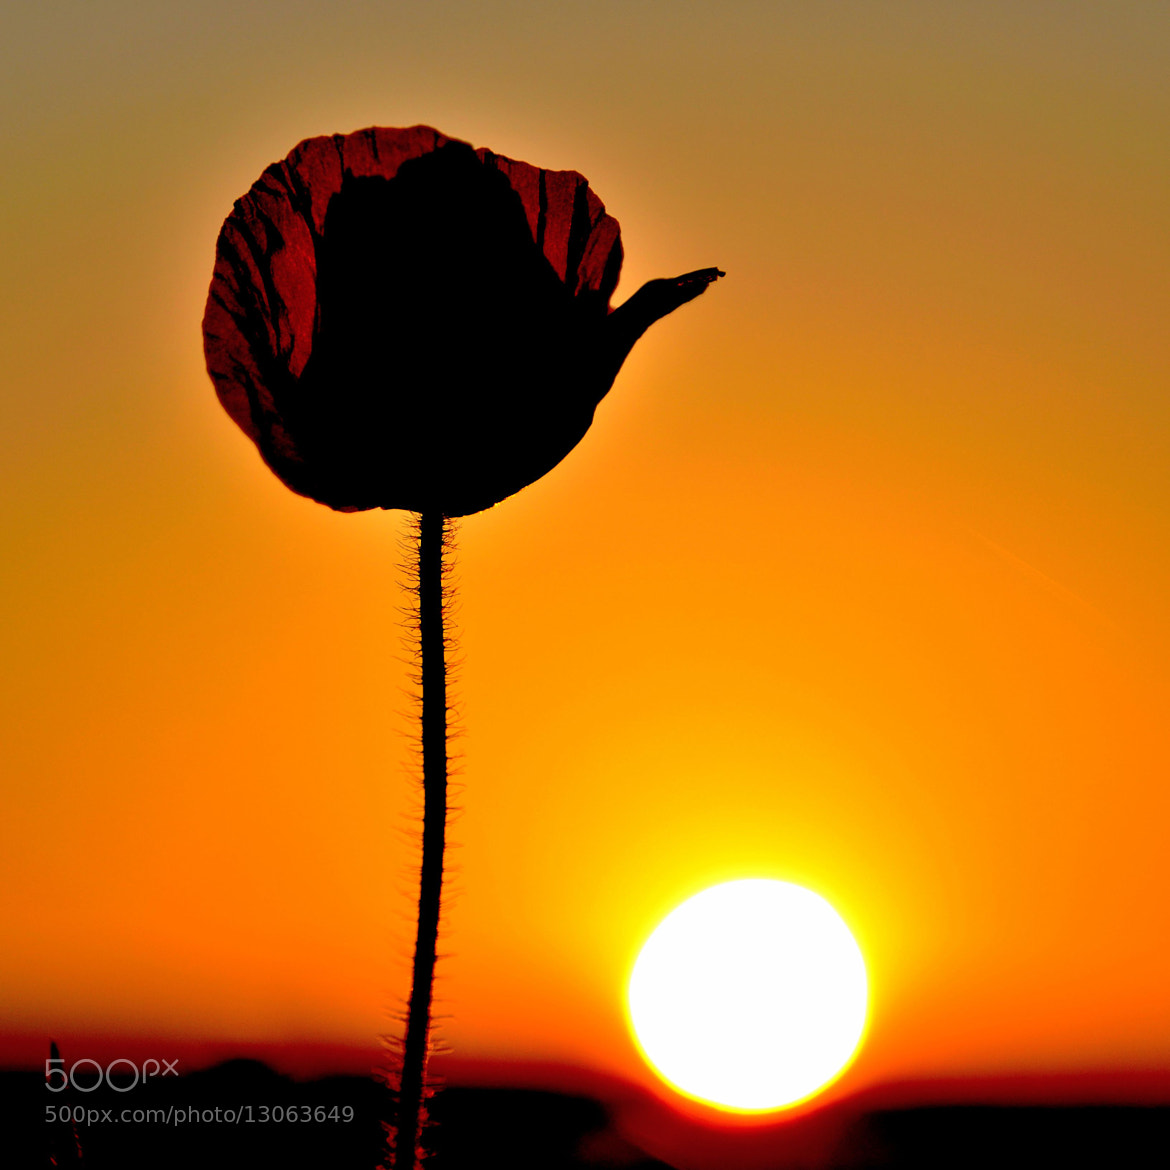 Photograph poppie by Stefano Rubino on 500px